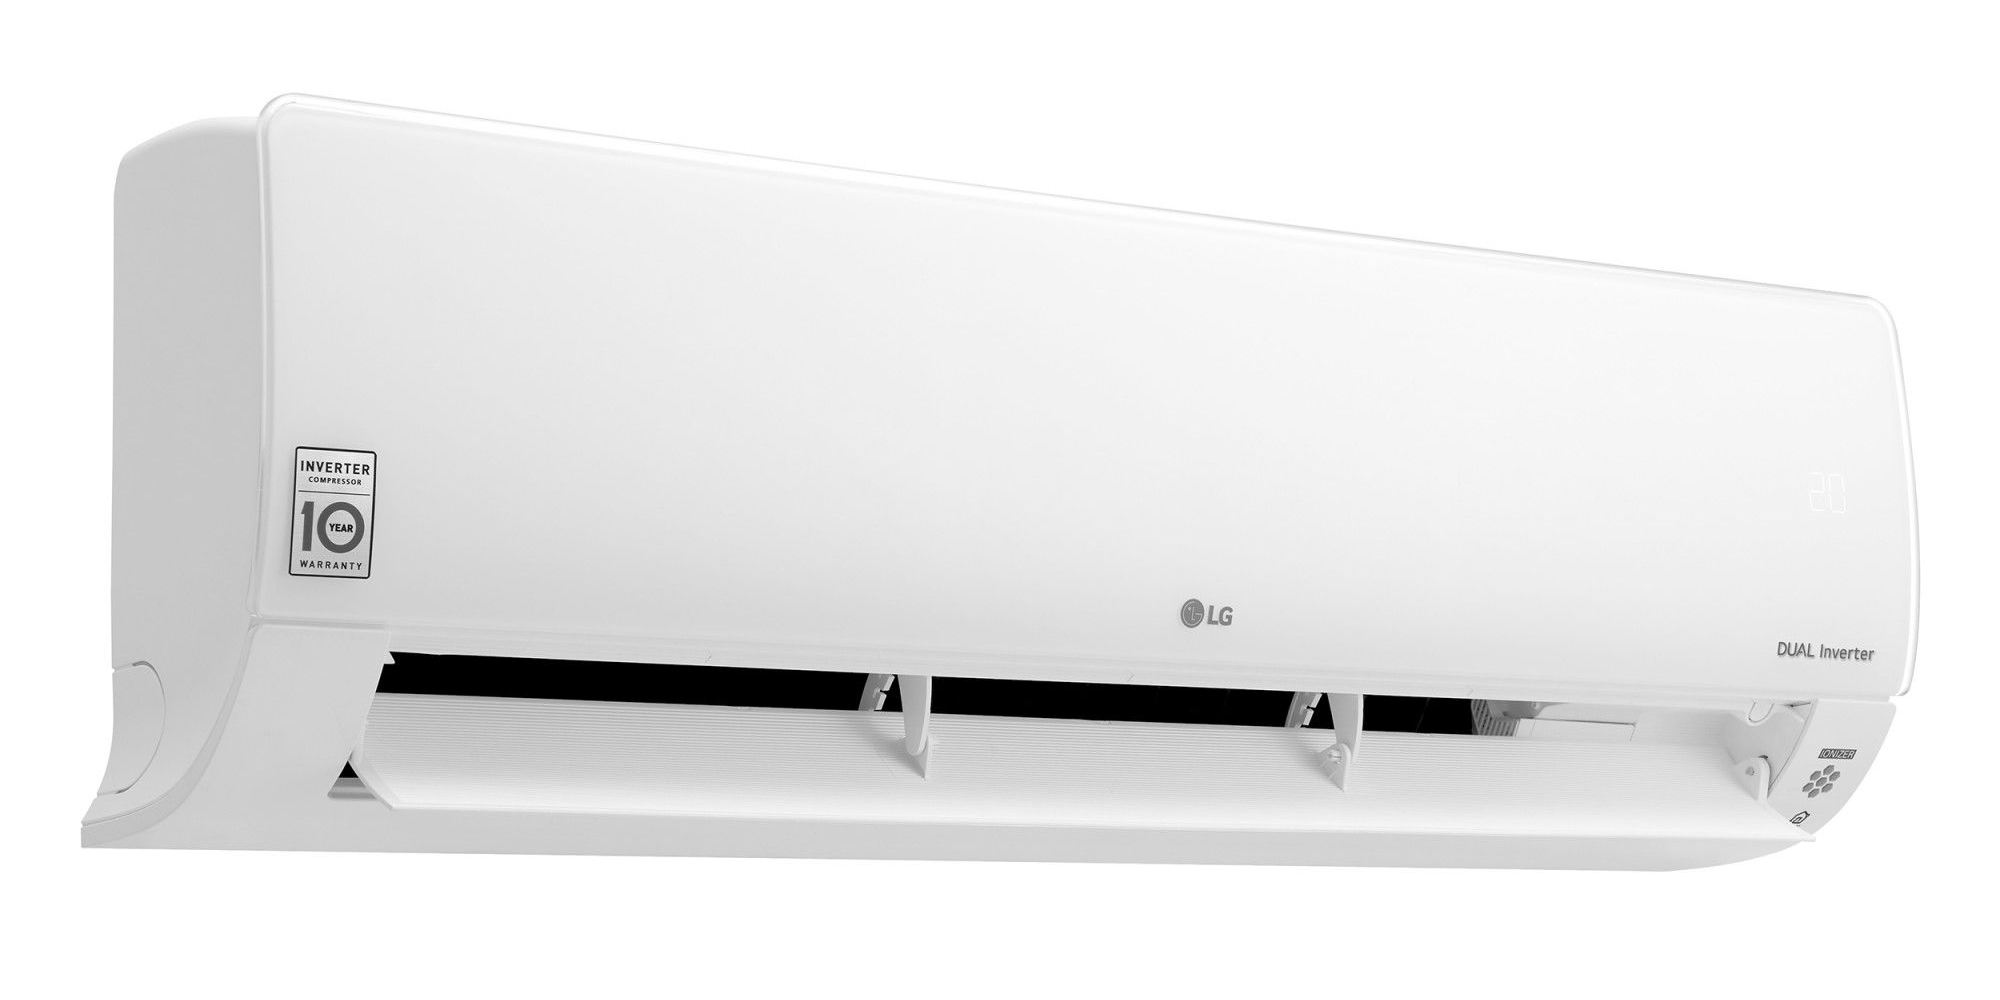 LG Deluxe Dual Inverter DC12RQ